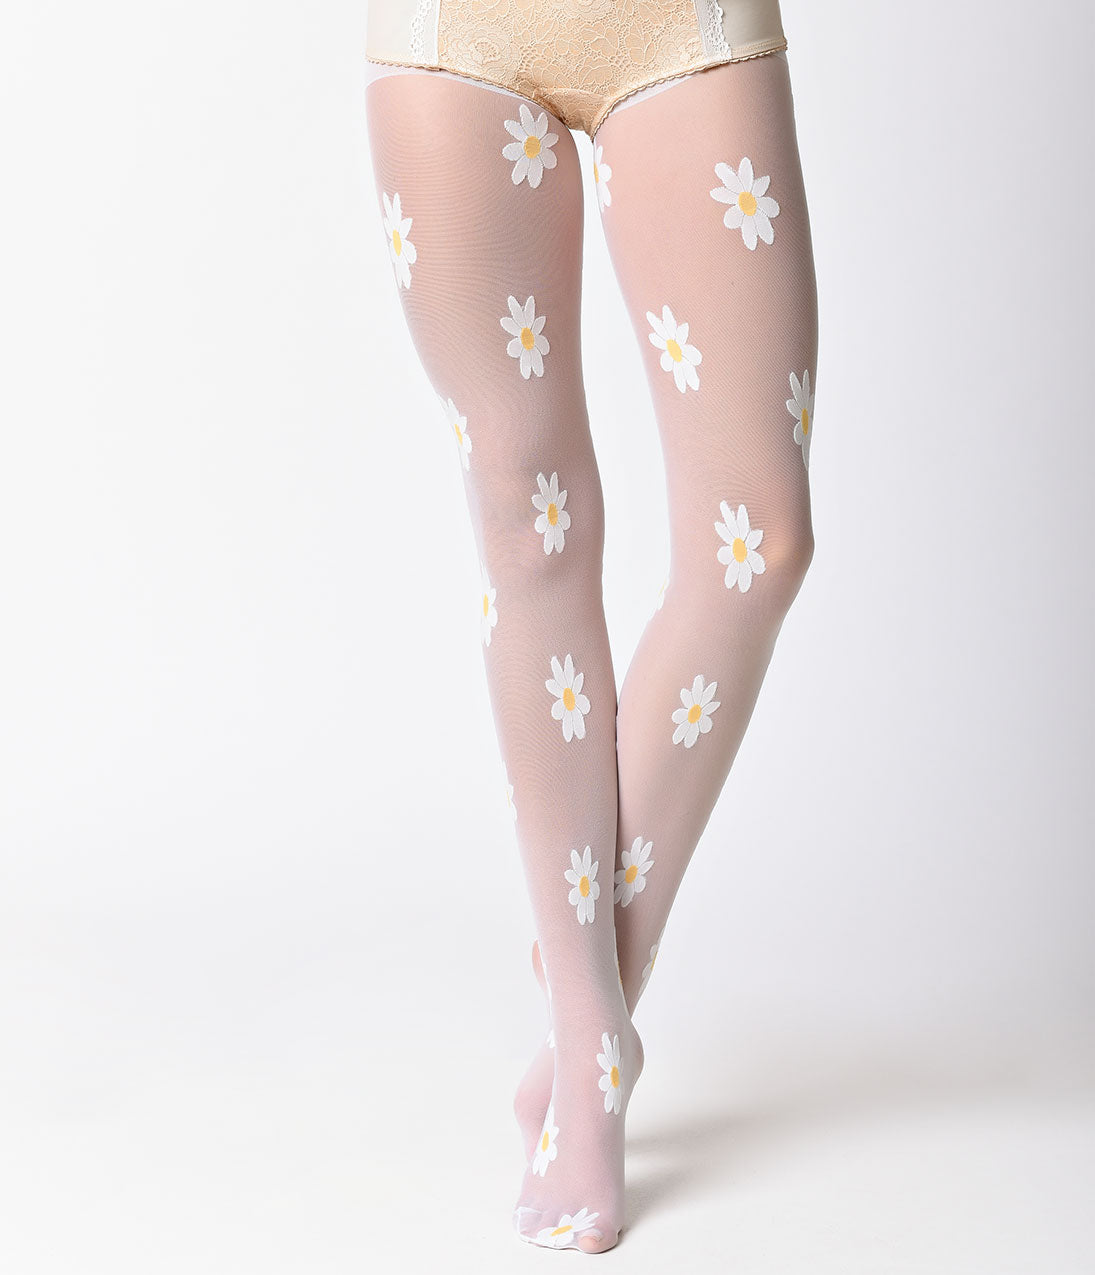 1960s Tights, Stockings, Panty Hose, Knee High Socks White Daisy Woven Sheer Pantyhose $16.00 AT vintagedancer.com